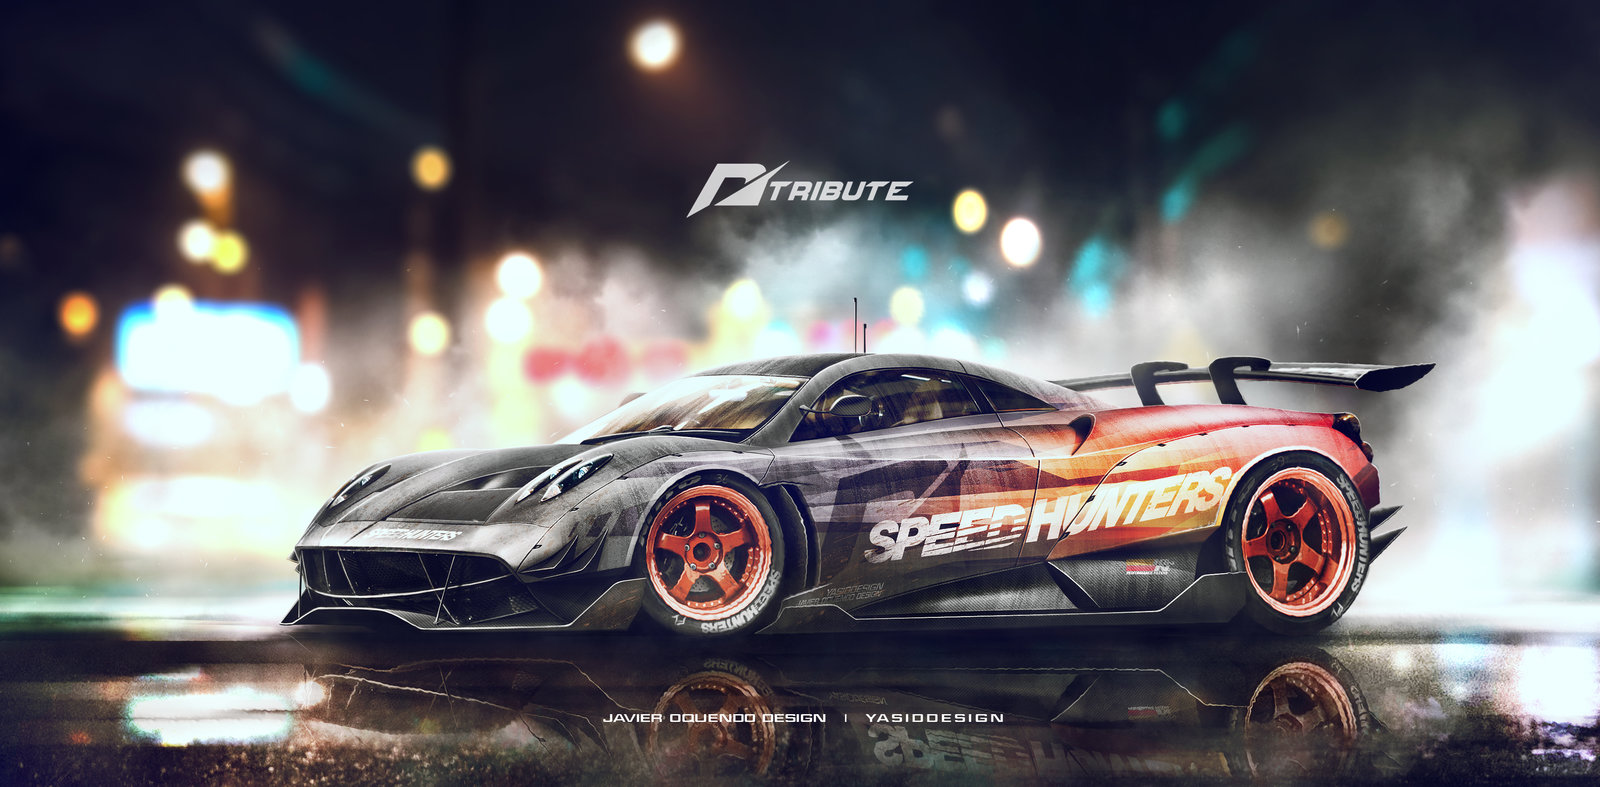 Speeduhnters Pagani Huayra - Need for speed tribute